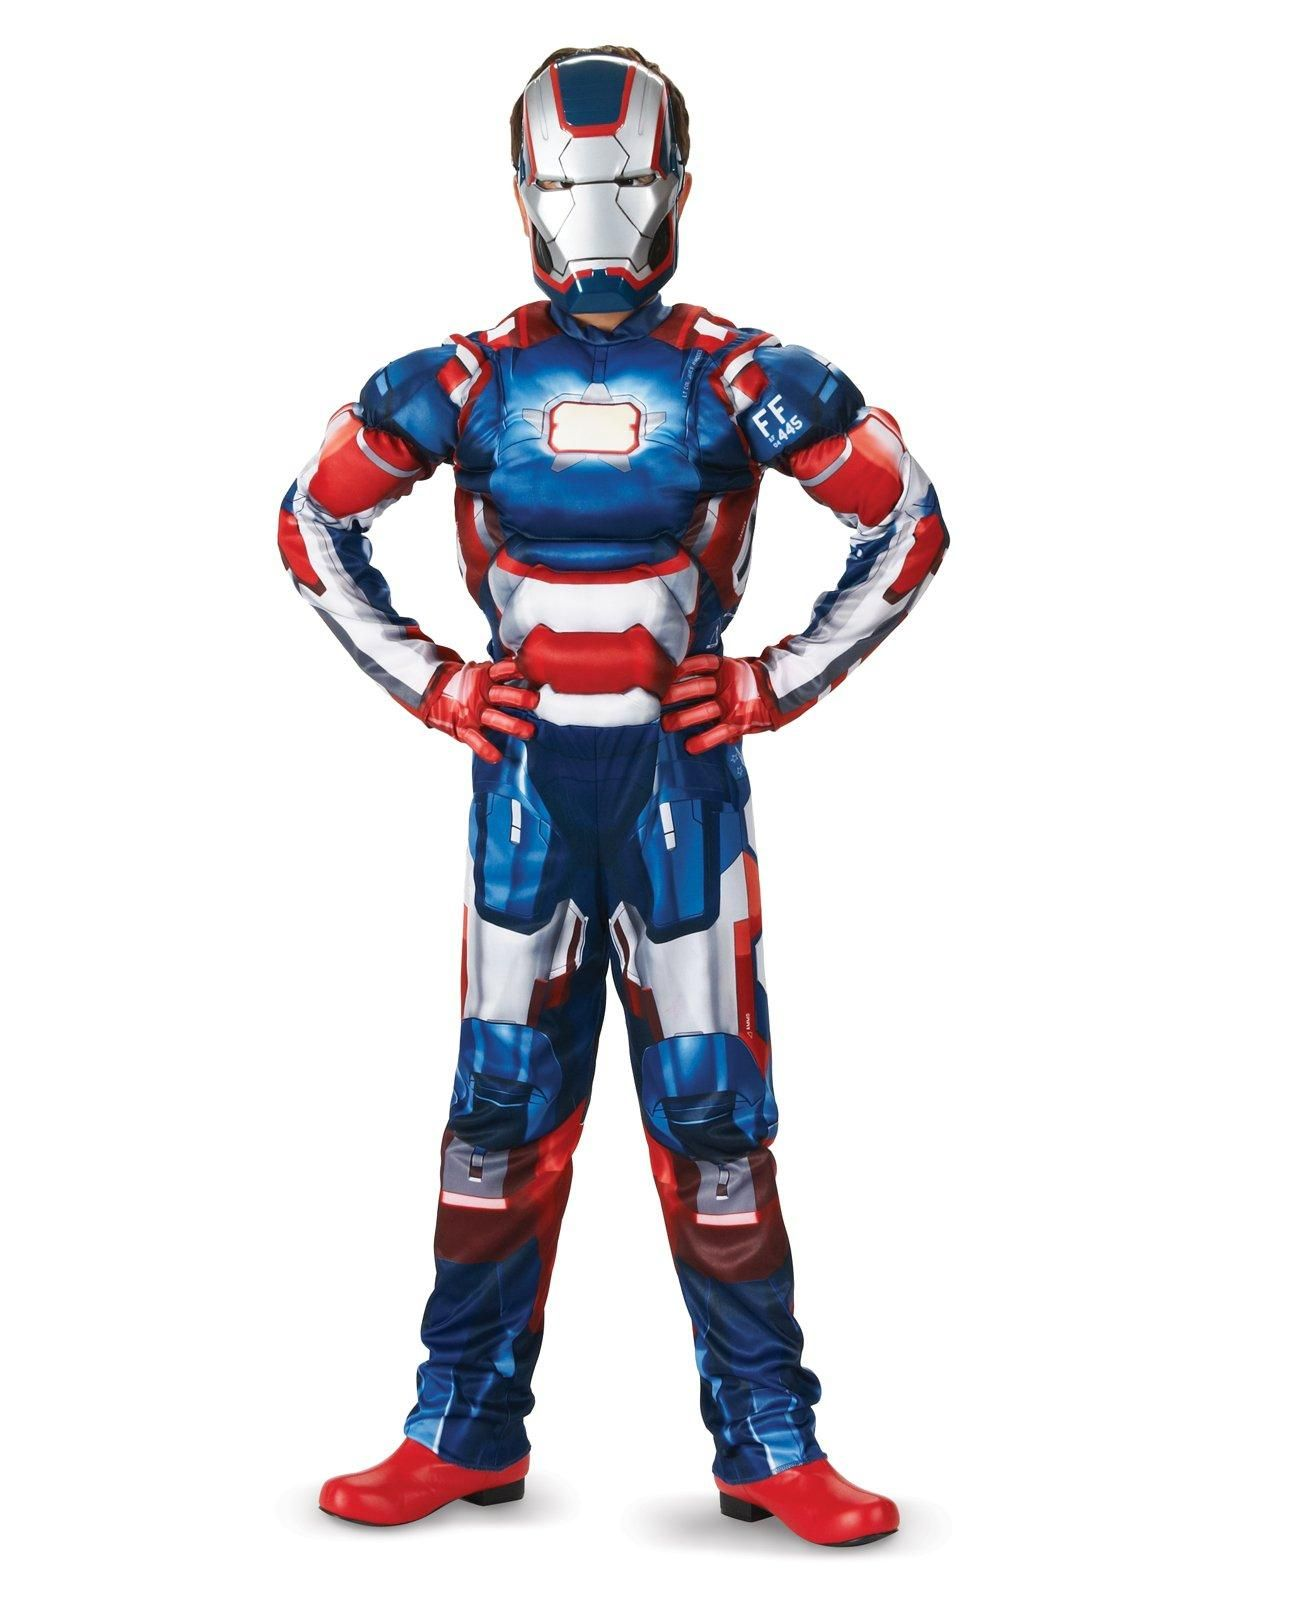 50376 Disguise Avengers Iron Man Deluxe Costume Skinovations Boys Size 10-12